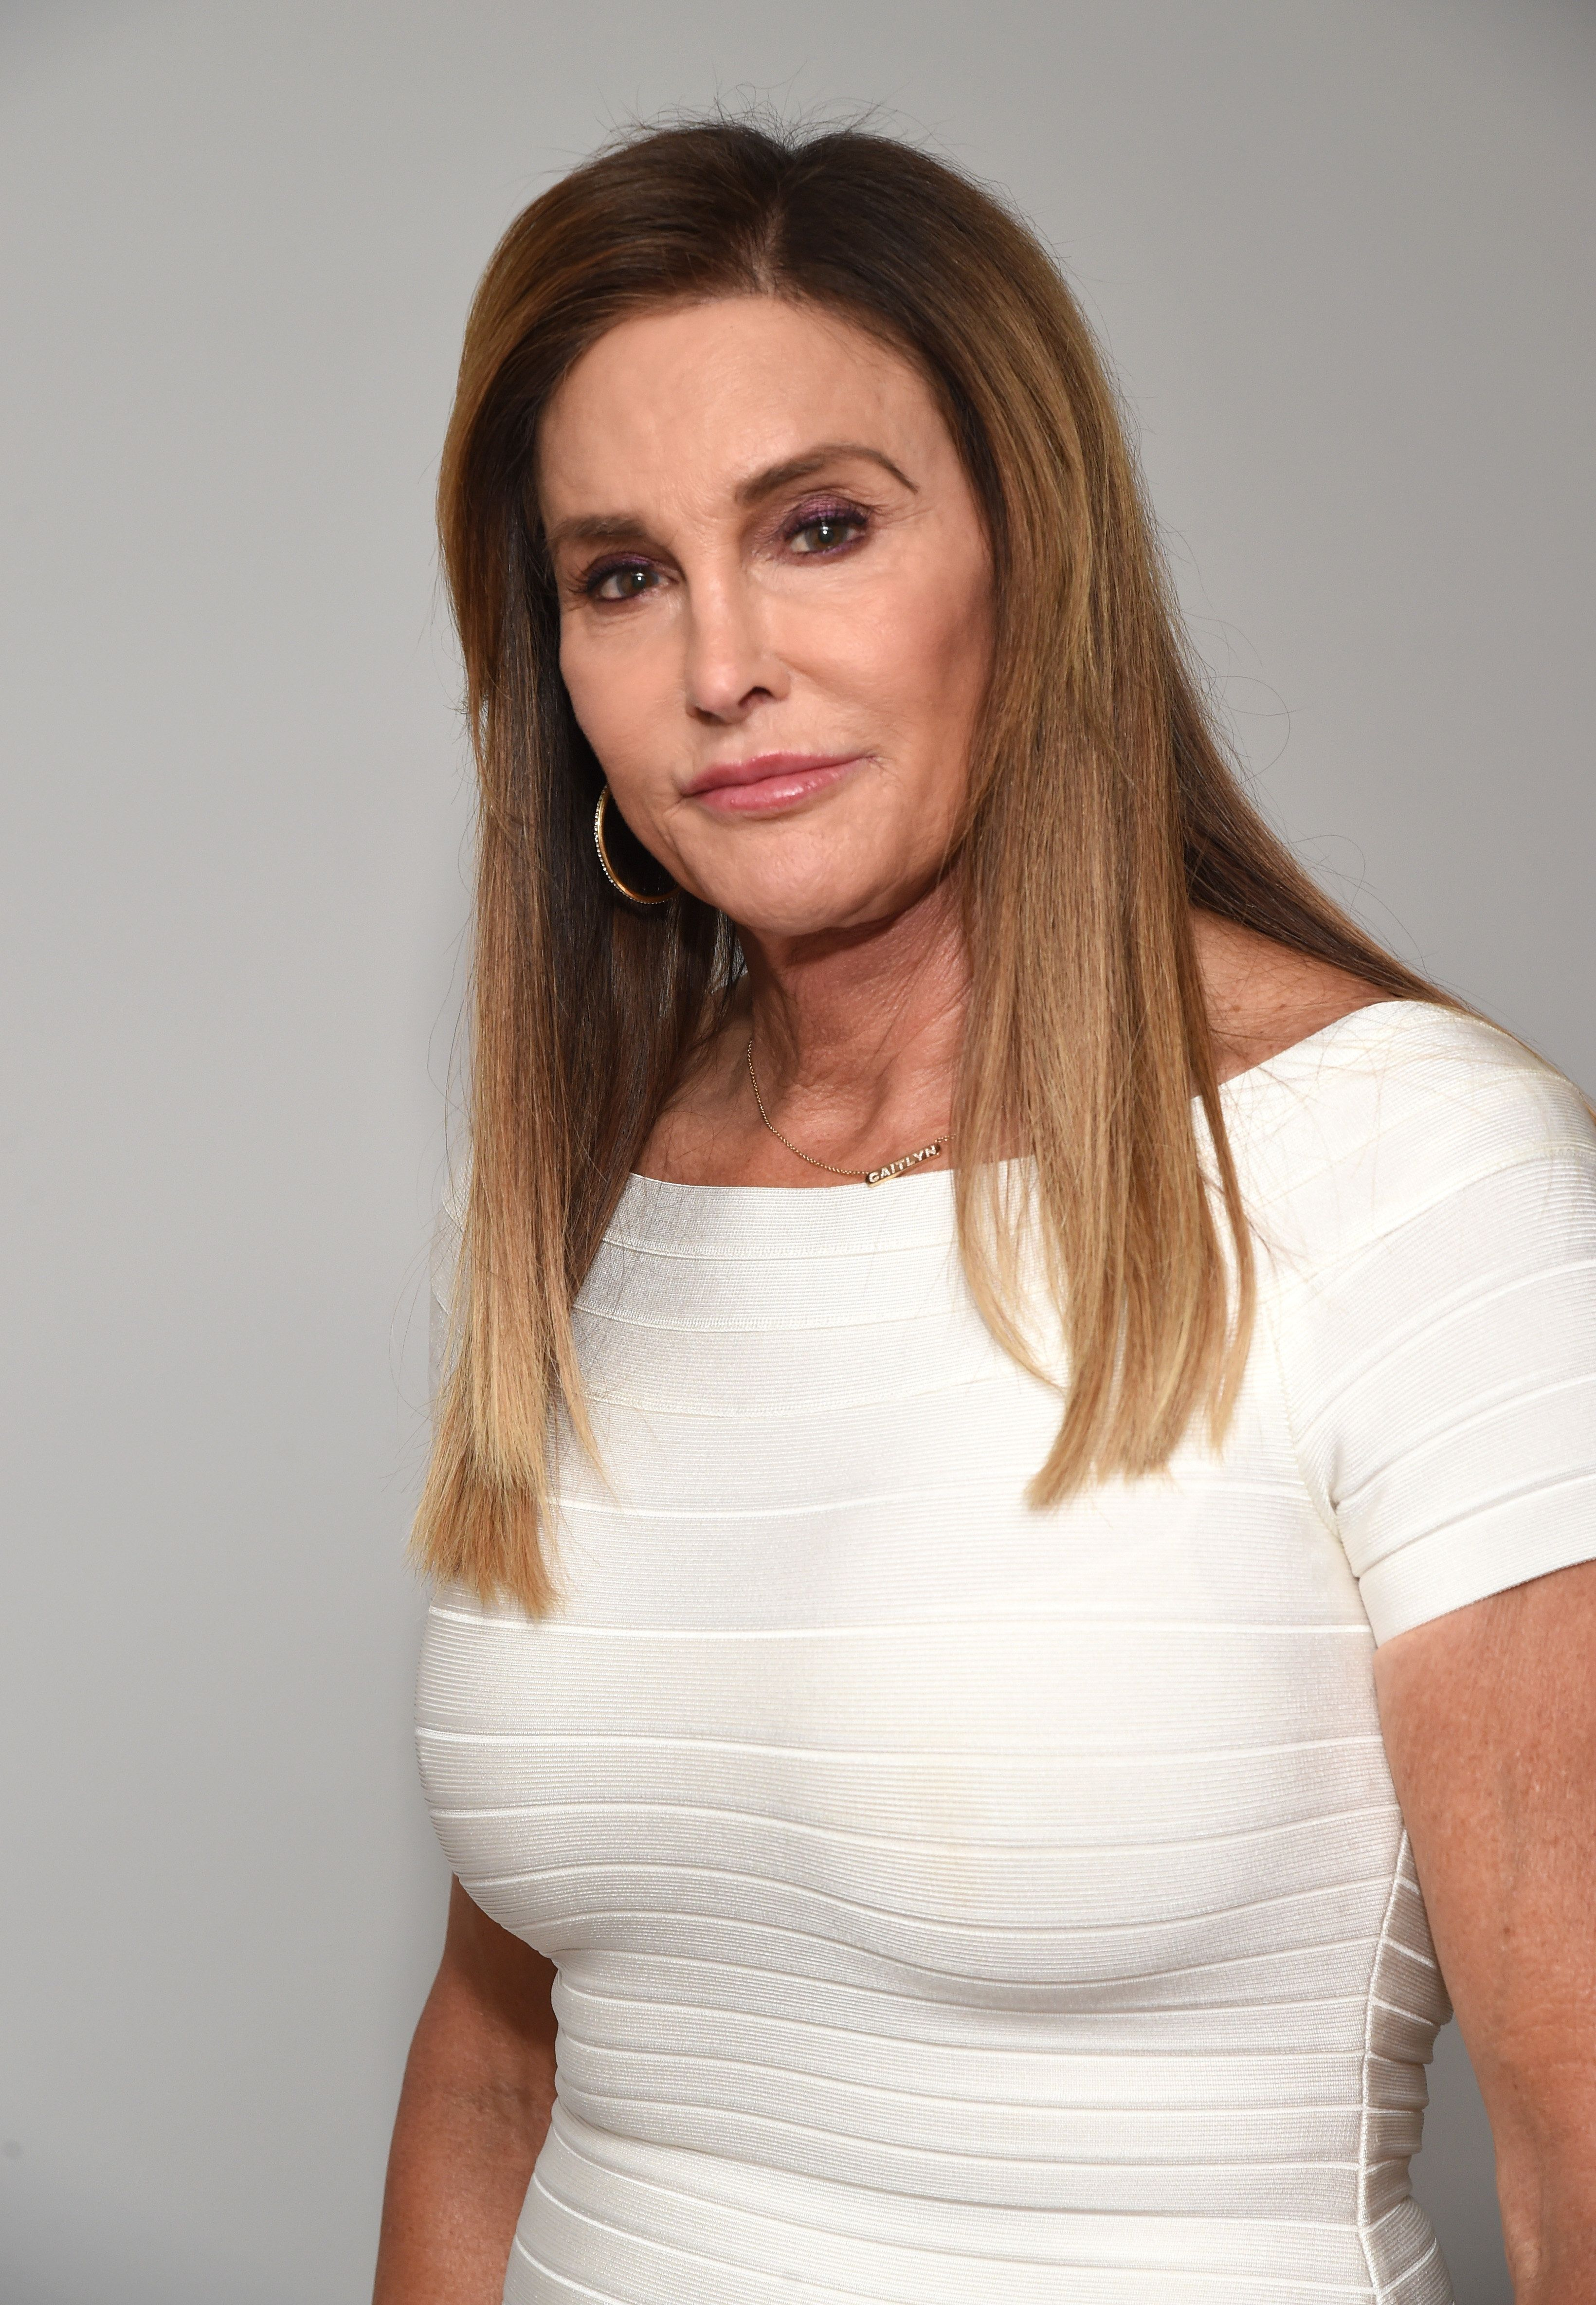 LOS ANGELES, CA - AUGUST 10:  Caitlyn Jenner attends OUT Magazine's OUT POWER 50 gala and award presentation presented by Genesis on August 10, 2017 in Los Angeles, California.  (Photo by Michael Kovac/Getty Images for OUT Magazine)